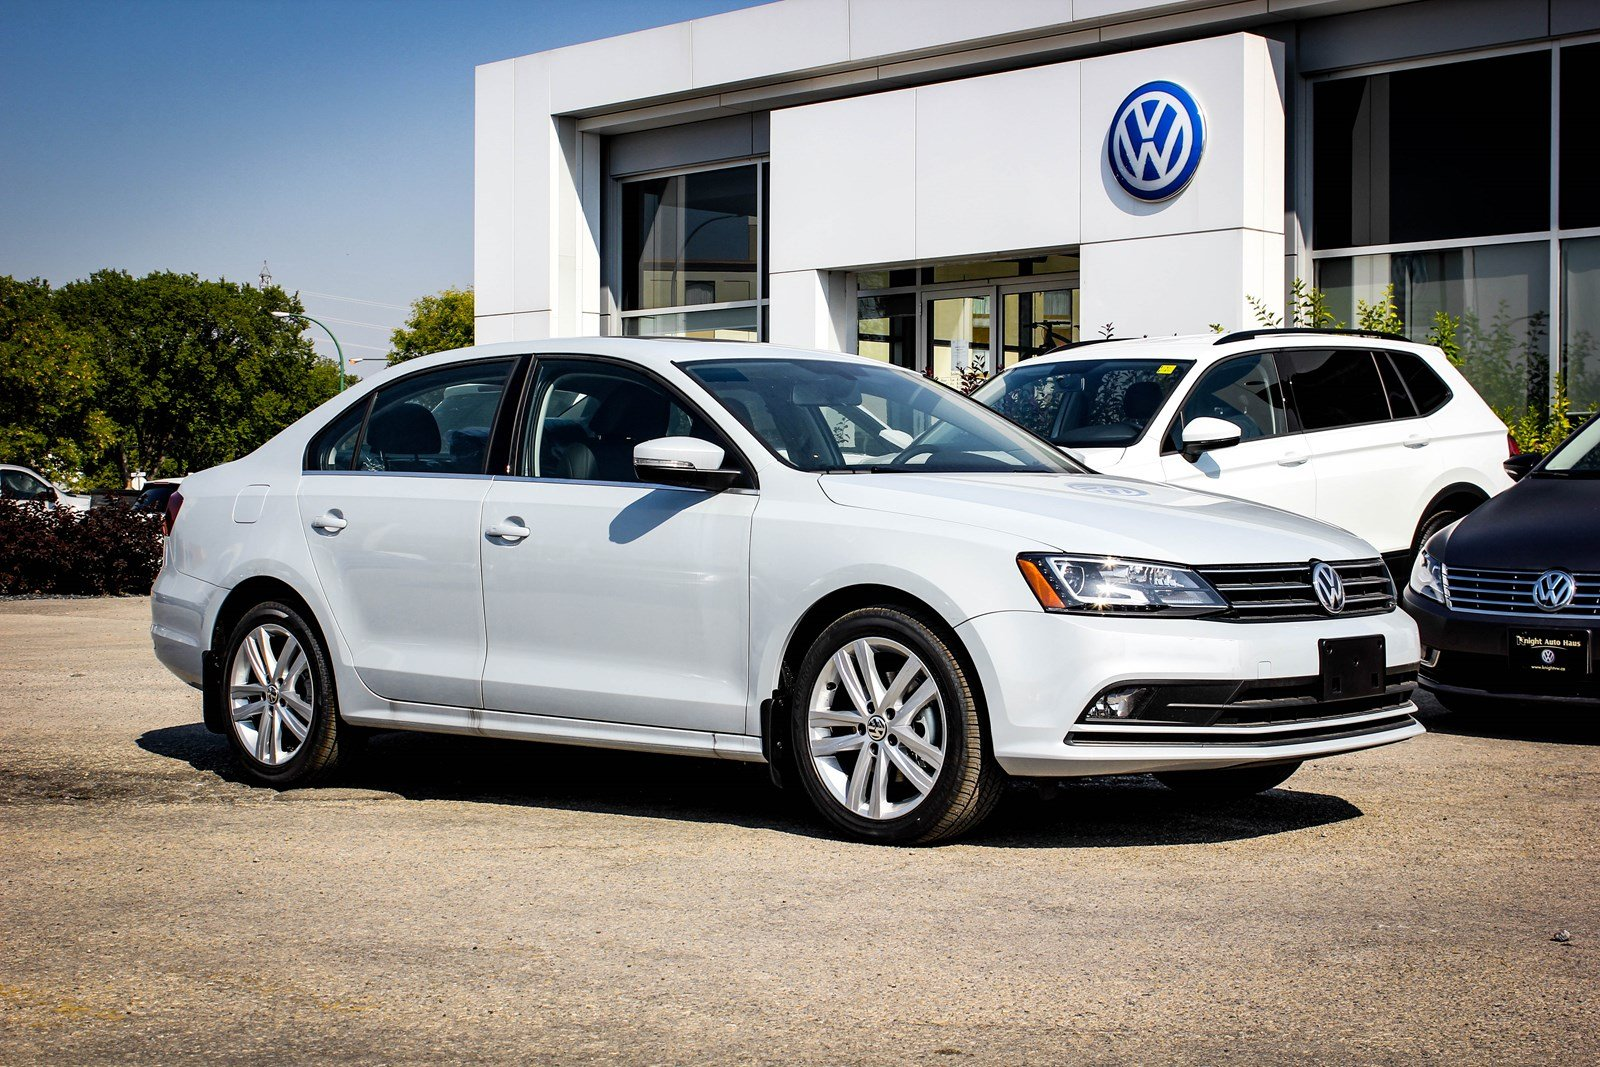 New 2017 Volkswagen Jetta Sedan Highline w/ Leather/Nav 0.9% Financing Avail. OAC